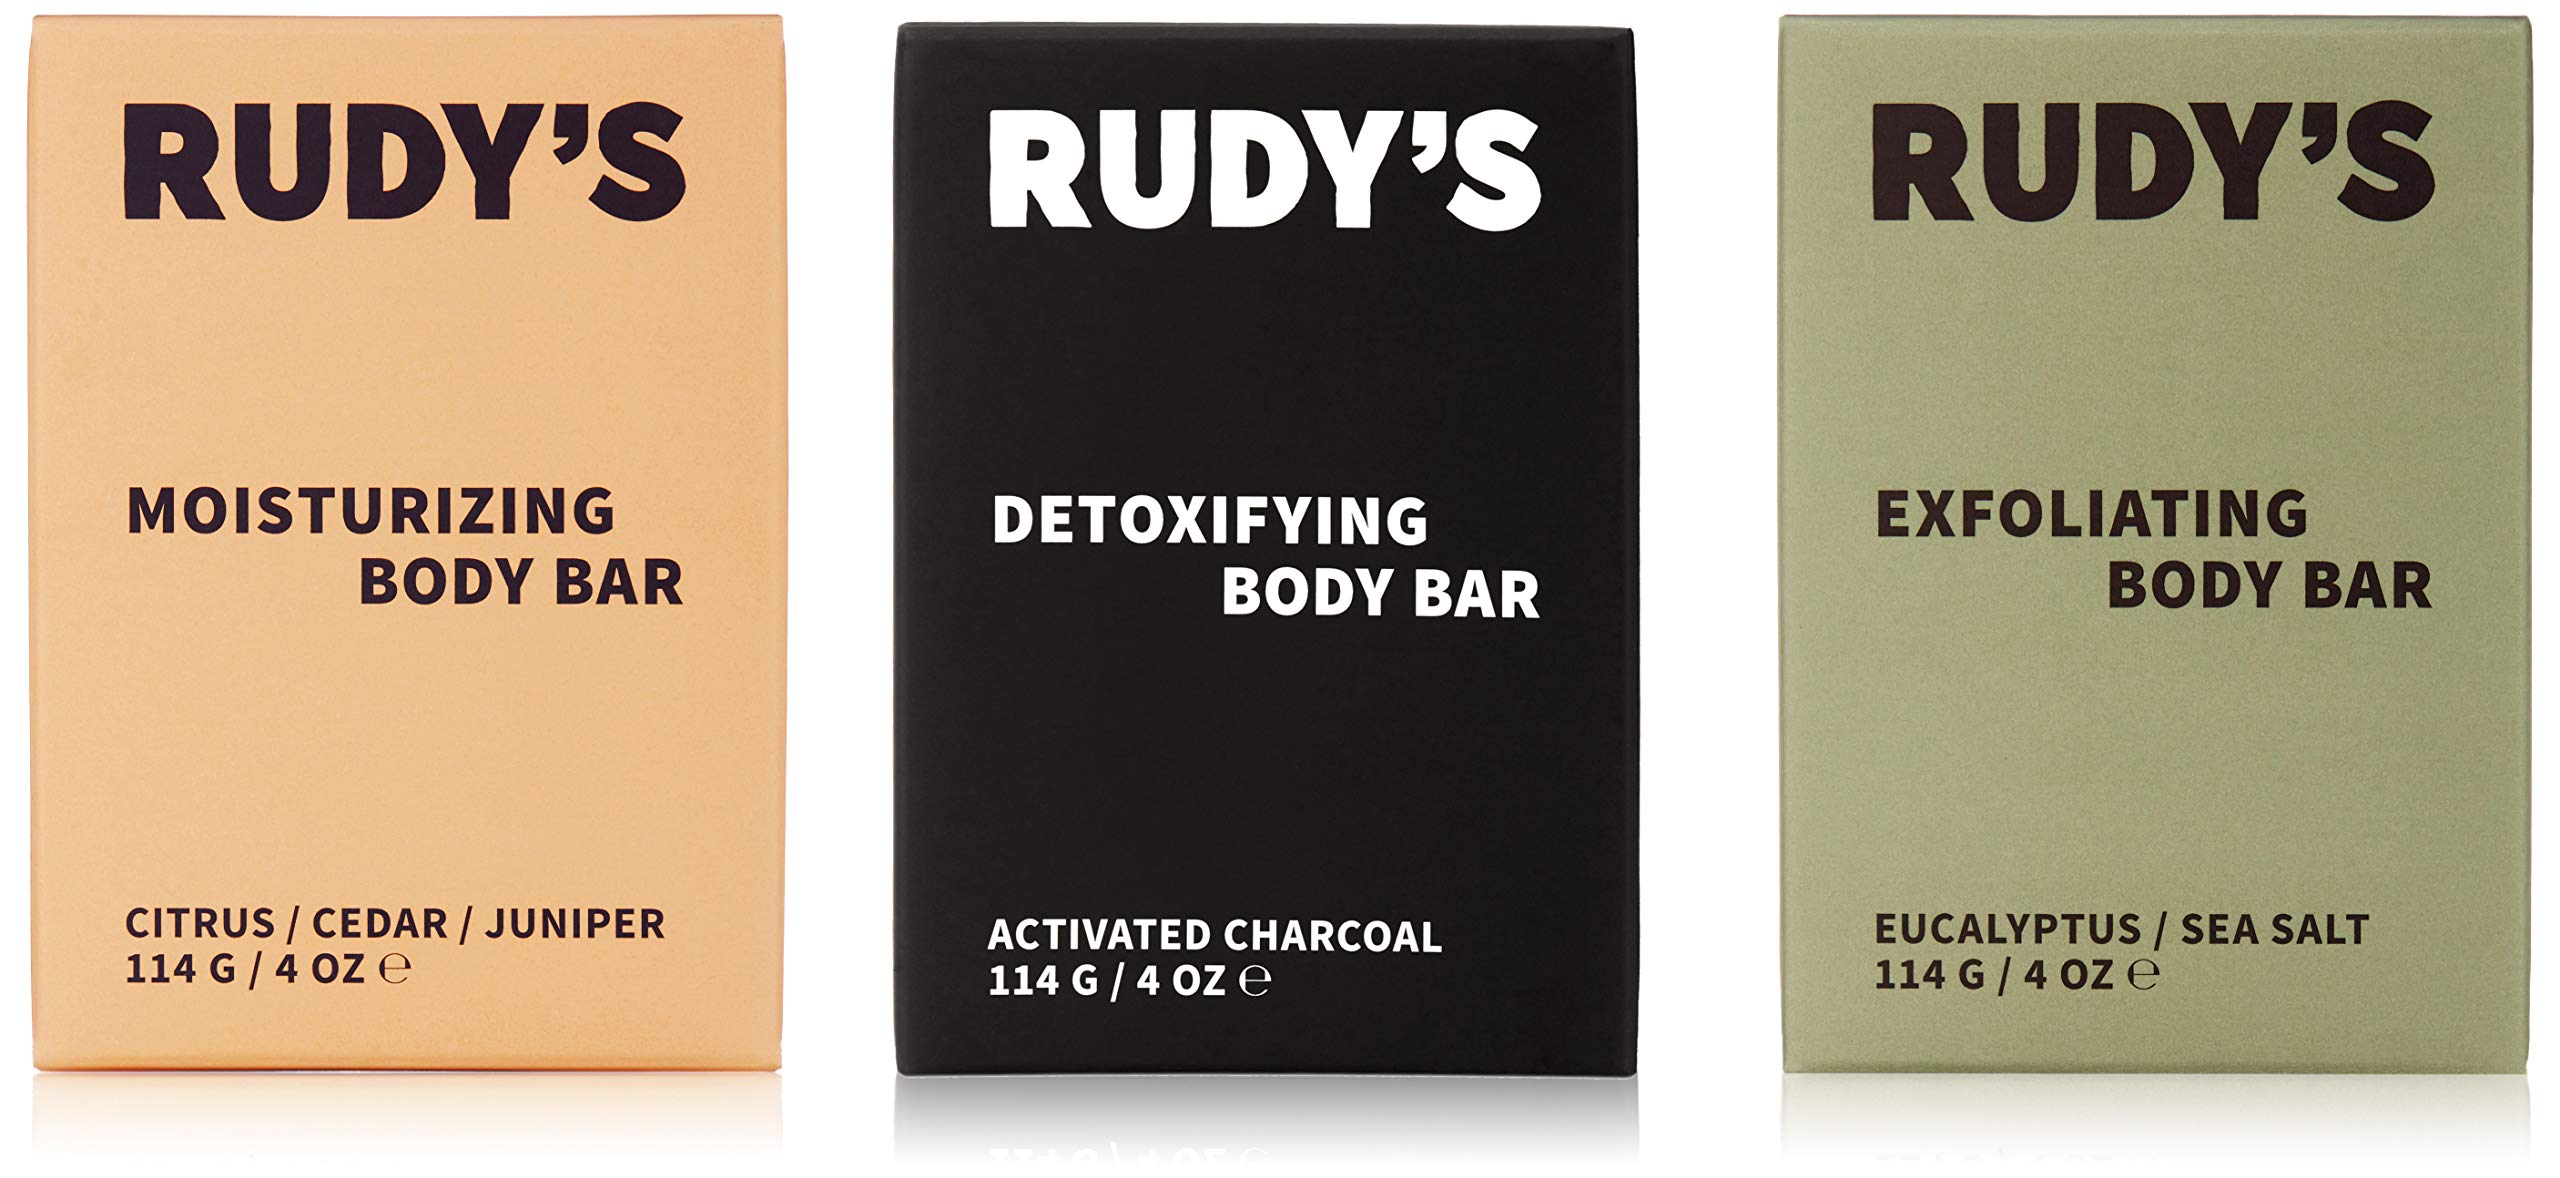 RUDY'S Body Bar, Set of 3, Sulfate and Paraben Free, Made from Natural Vegan Ingredients, Sustainably Sourced and Made in USA